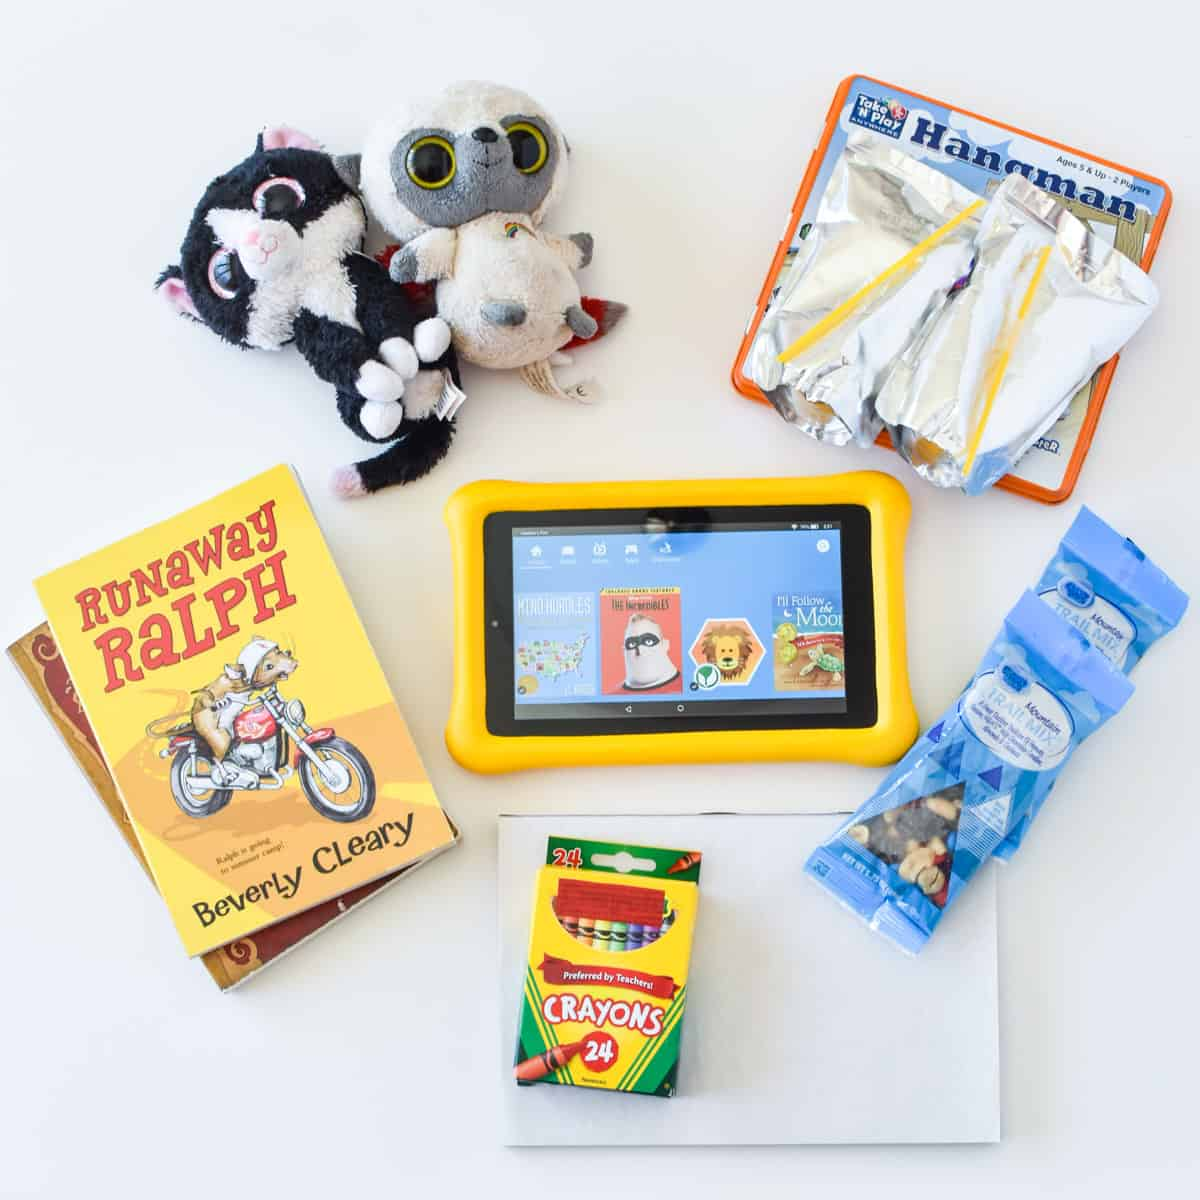 books stuffed animals, tablet, crayons and other road trip essentials for kids